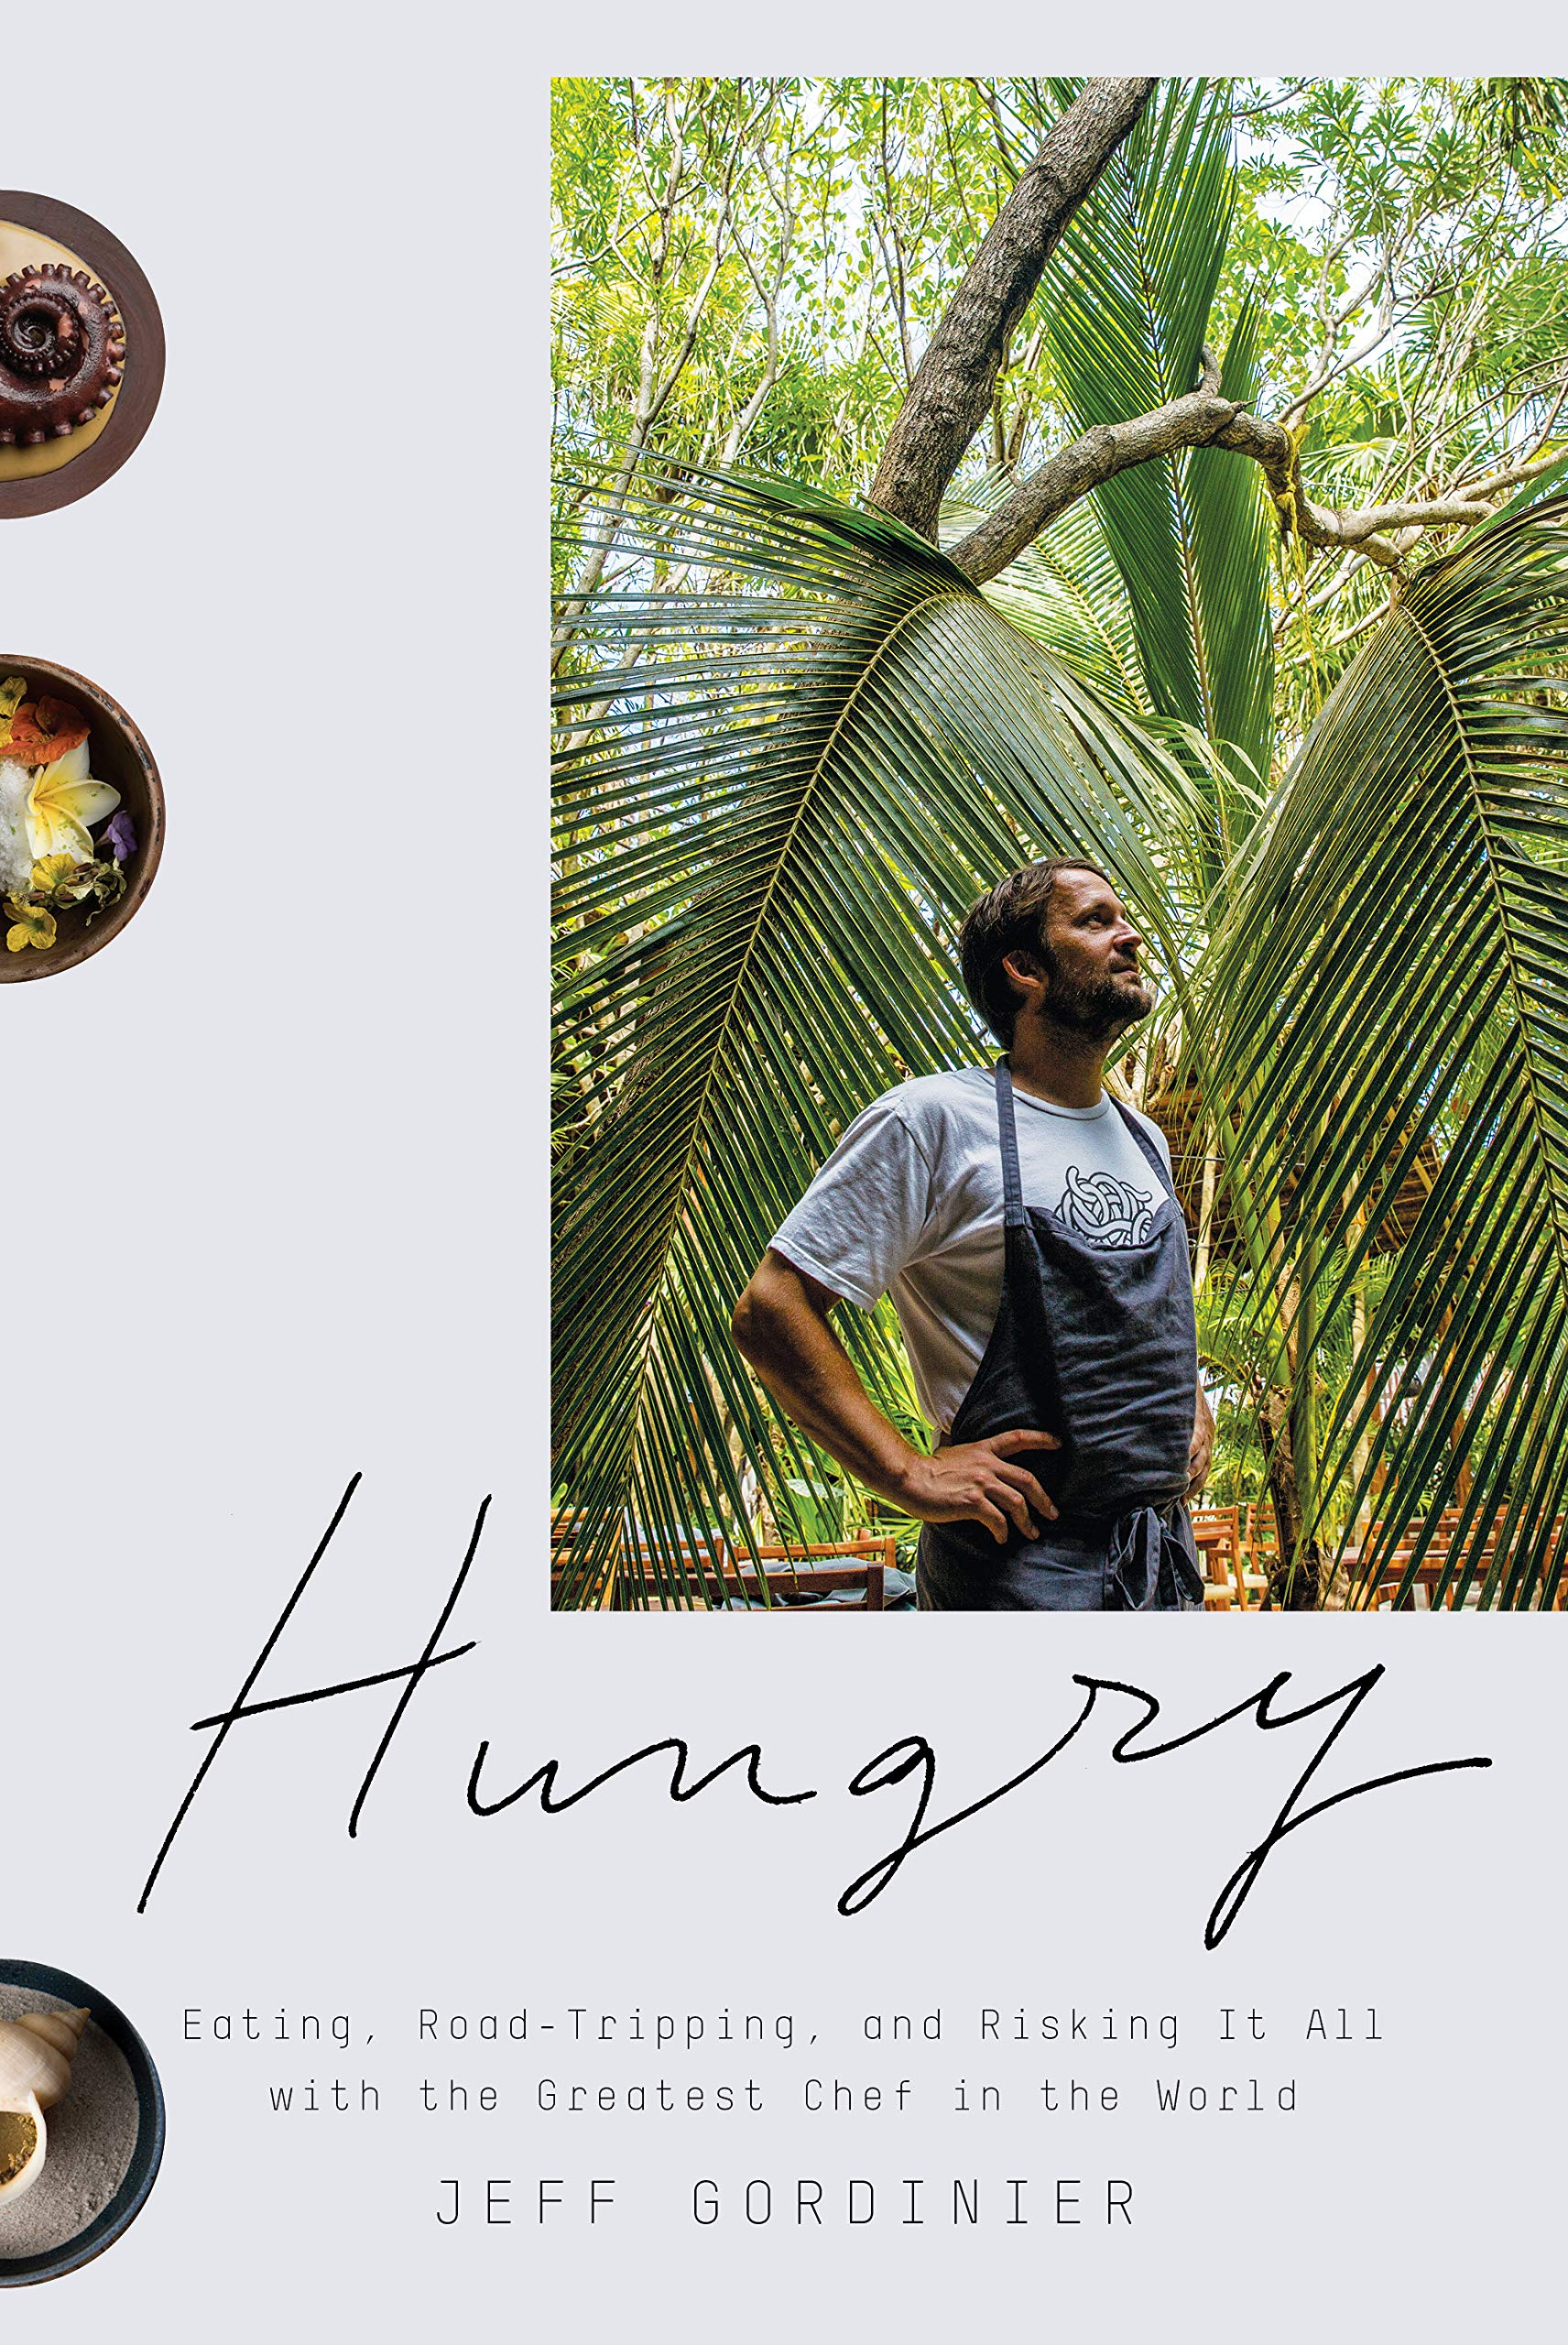 Hungry: Eating, Road-Tripping, and Risking It All with the ...